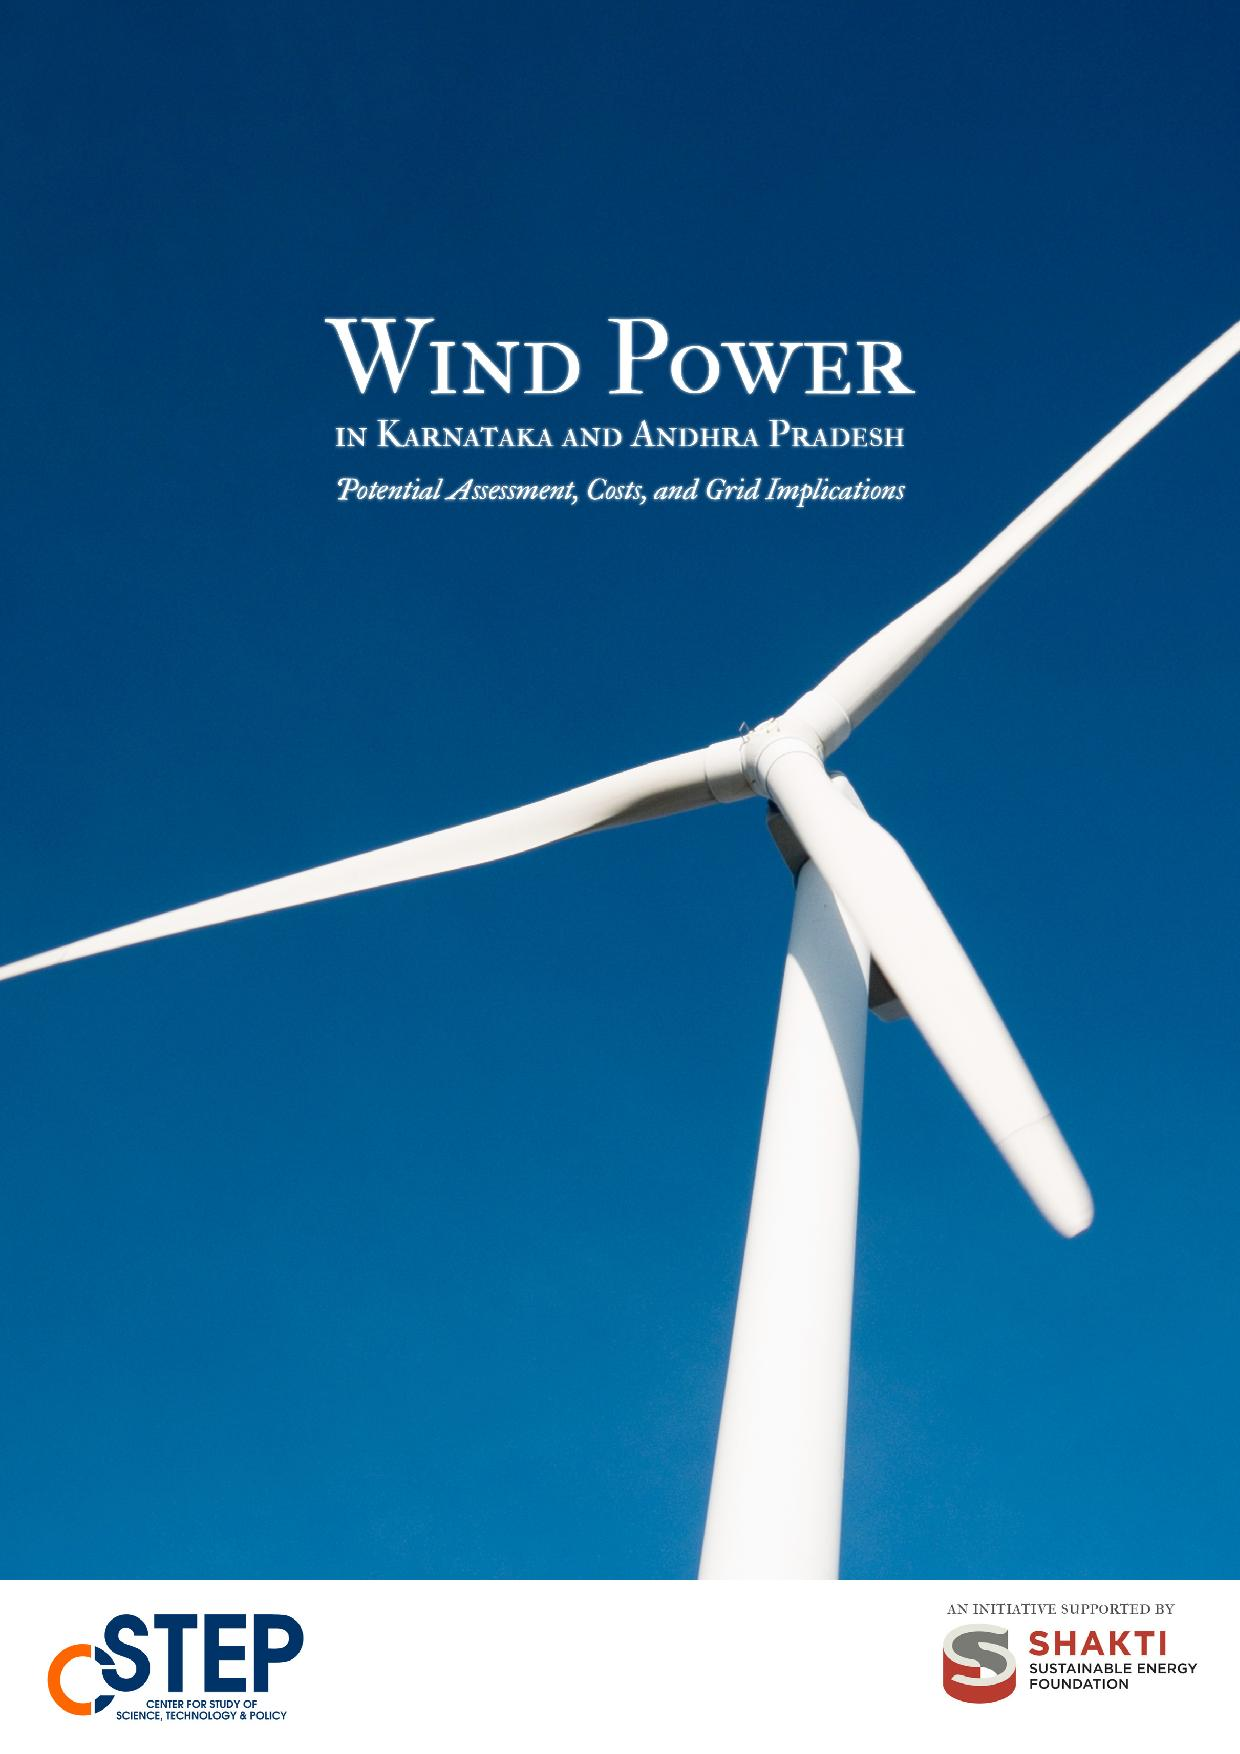 Wind Power in Karnataka and Andhra Pradesh - Potential Assessment, Costs, and Grid Implications